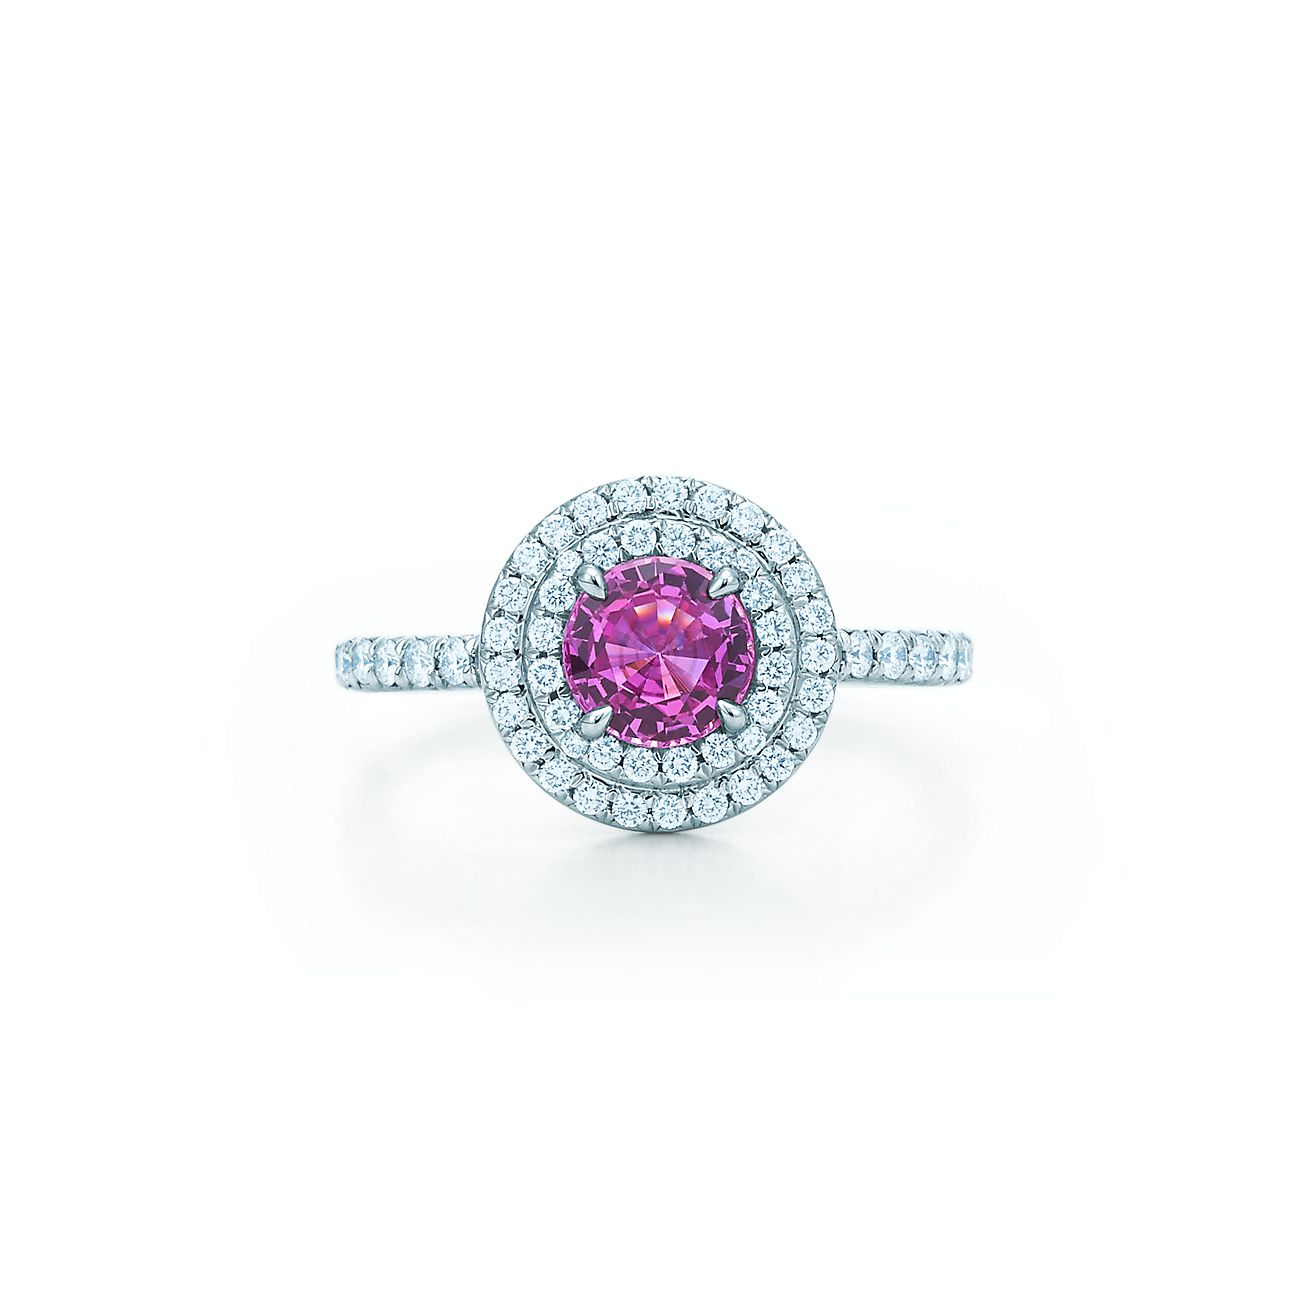 Tiffany Soleste Ring In Platinum With A .45-carat Pink